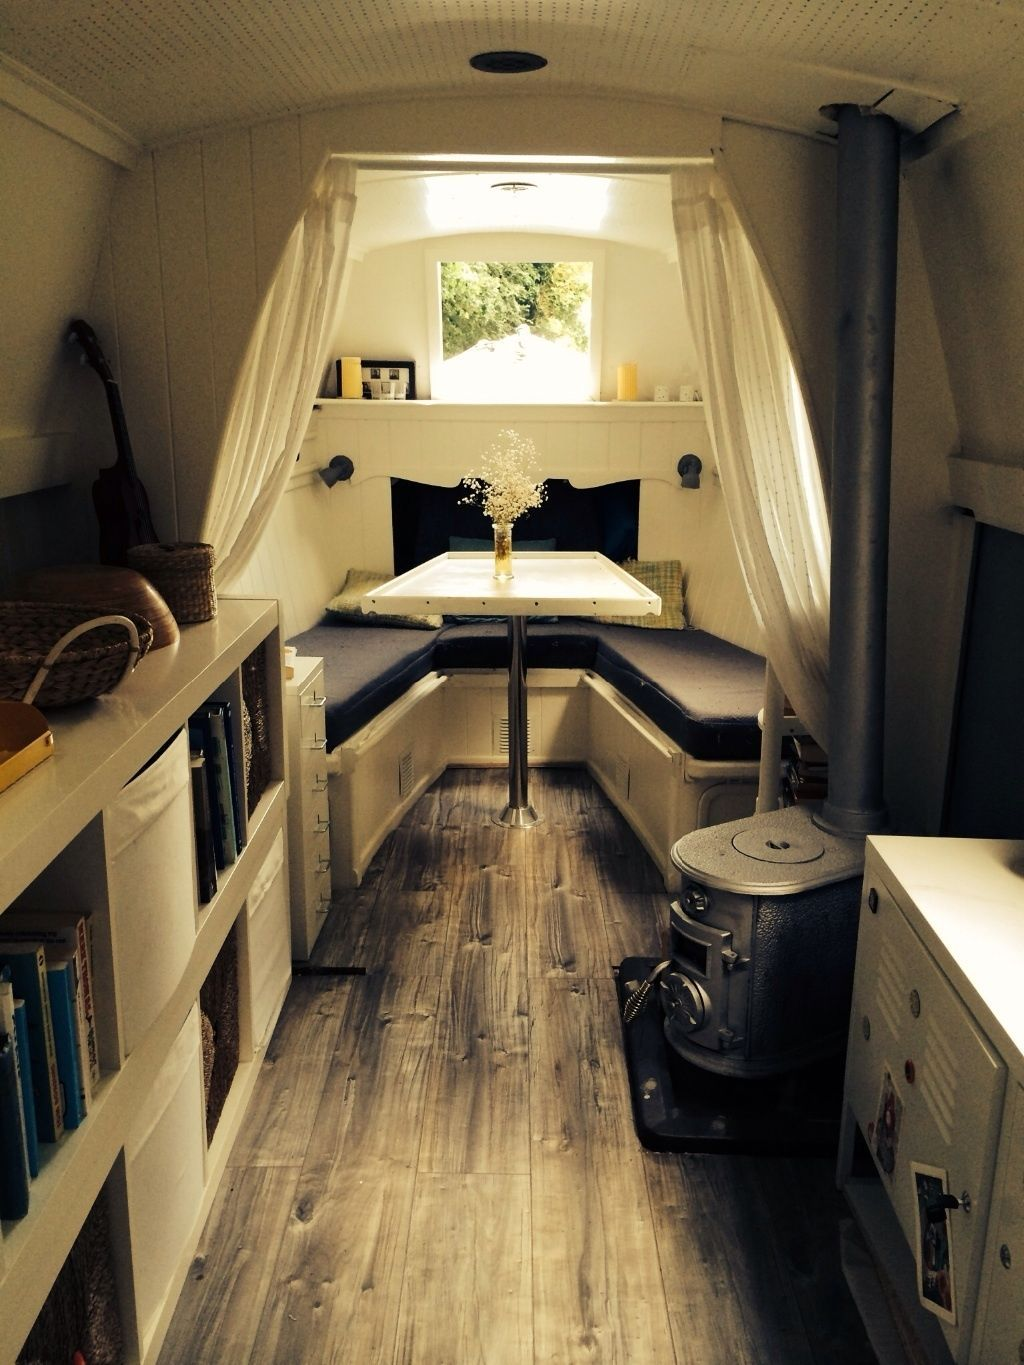 40ft Narrowboat refurbished this year   Boating life   Pinterest     40ft Narrowboat  I like the one level floors and how open it is  It makes  it look and feel bigger